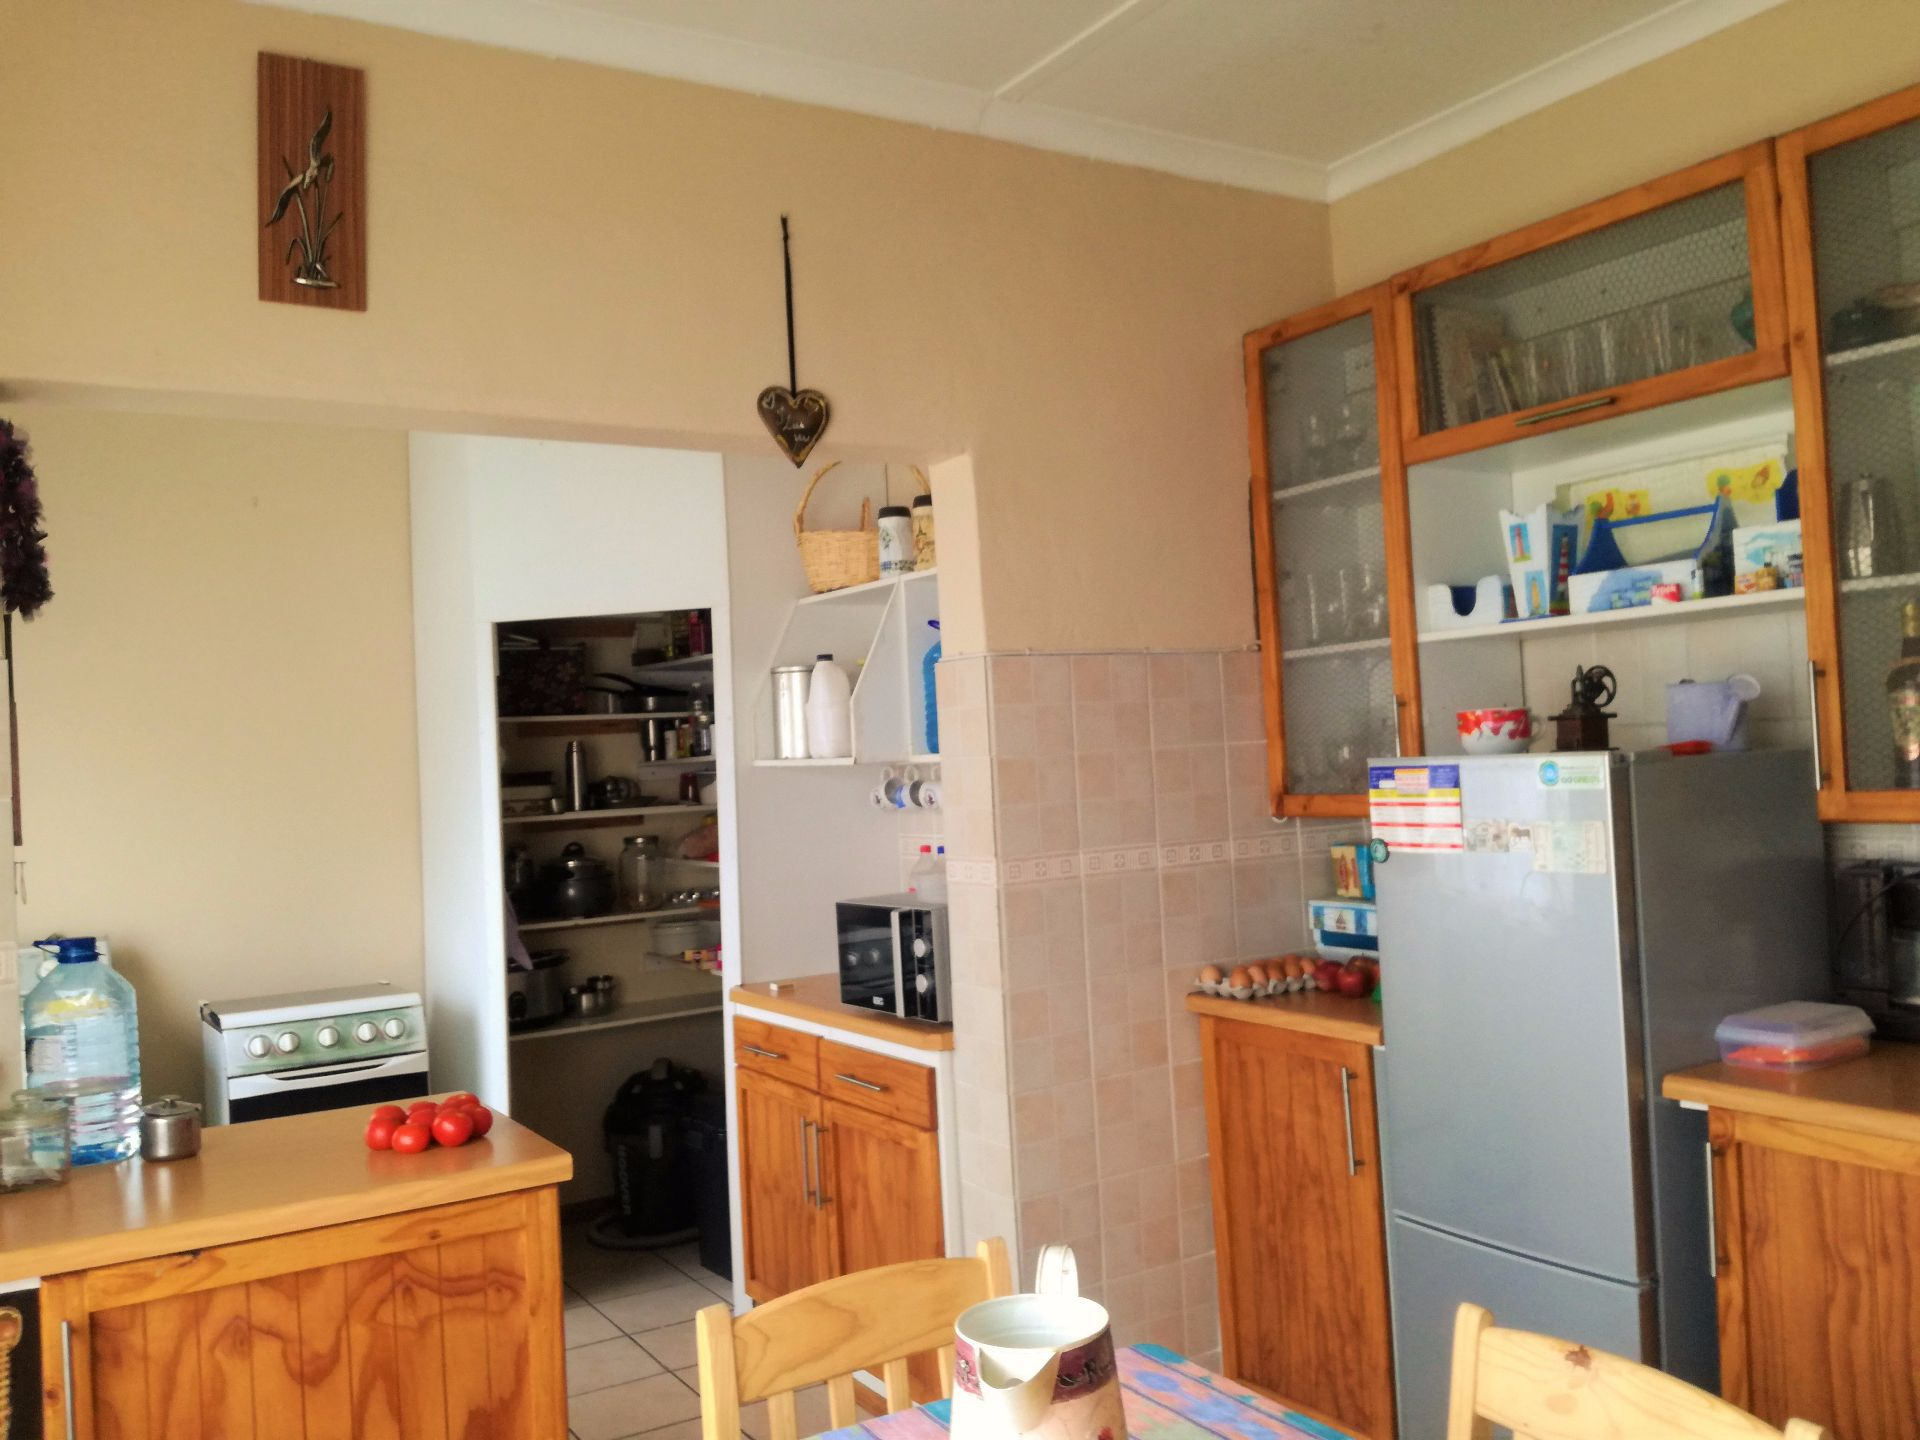 Potchefstroom Central property for sale. Ref No: 13623596. Picture no 7